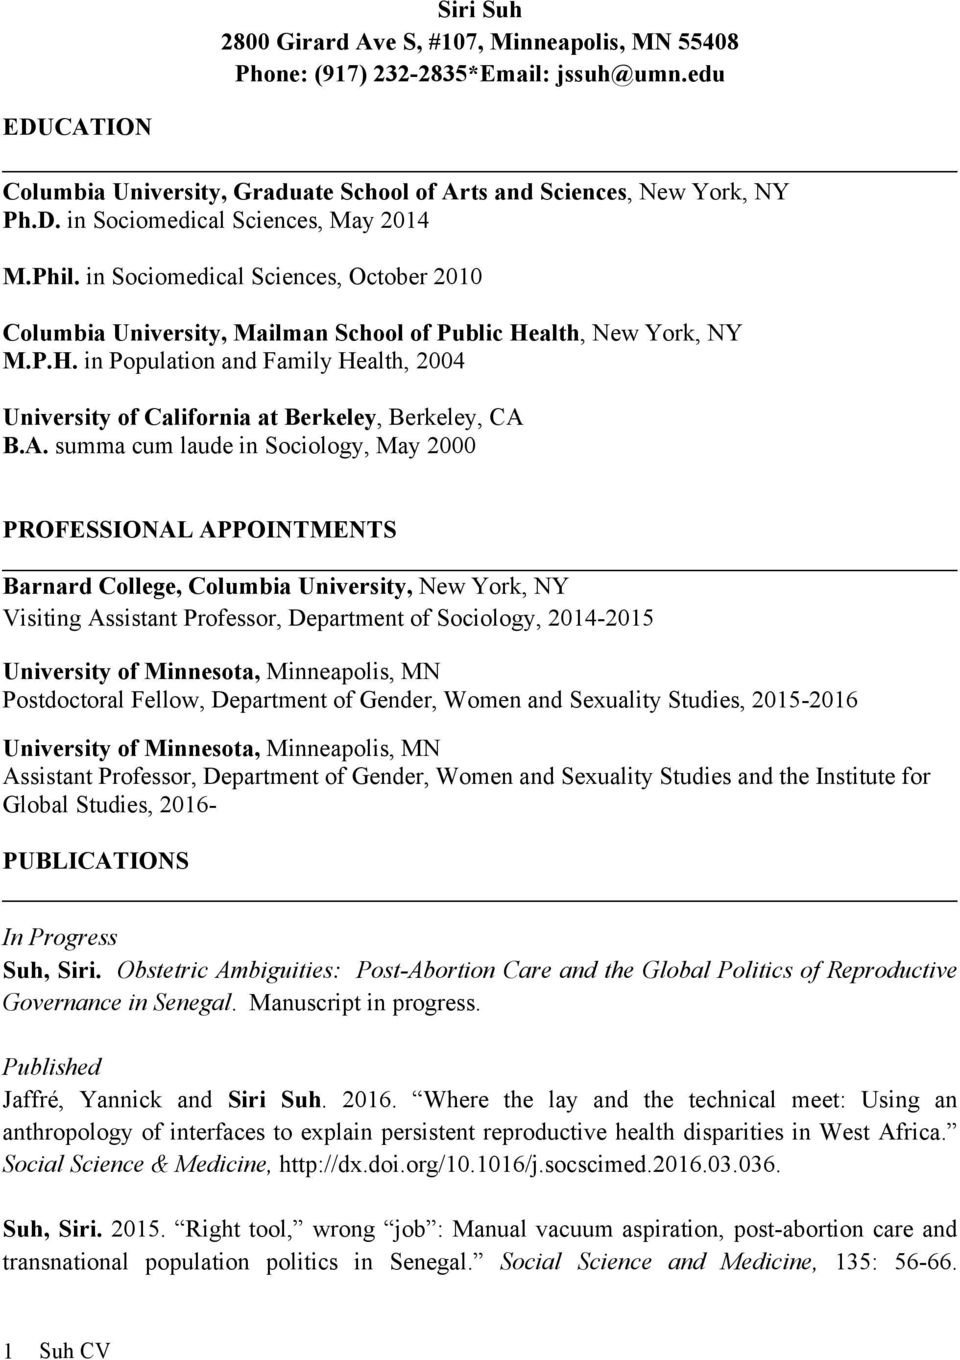 A. summa cum laude in Sociology, May 2000 PROFESSIONAL APPOINTMENTS Barnard College, Columbia University, New York, NY Visiting Assistant Professor, Department of Sociology, 2014-2015 University of